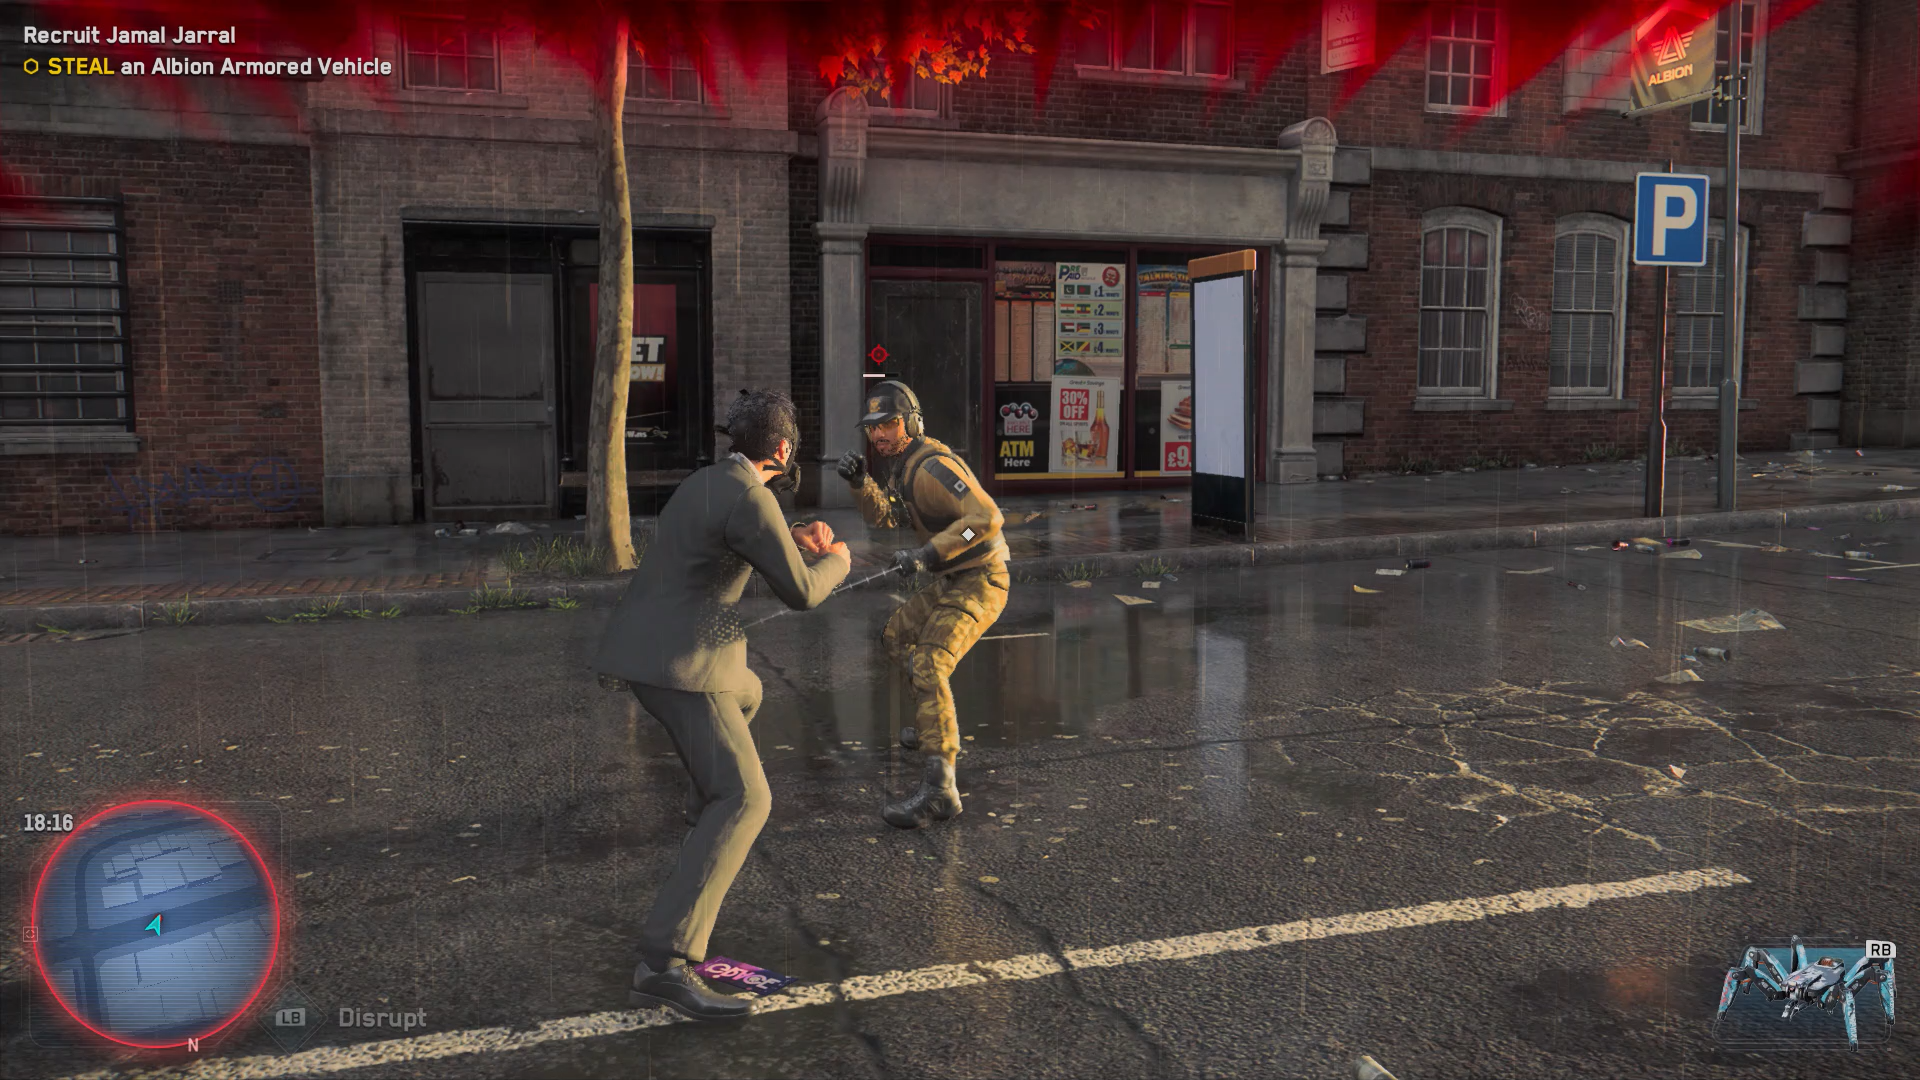 A screenshot of a melee combat scenario in Watch Dogs: Legion, showing two characters in a street.